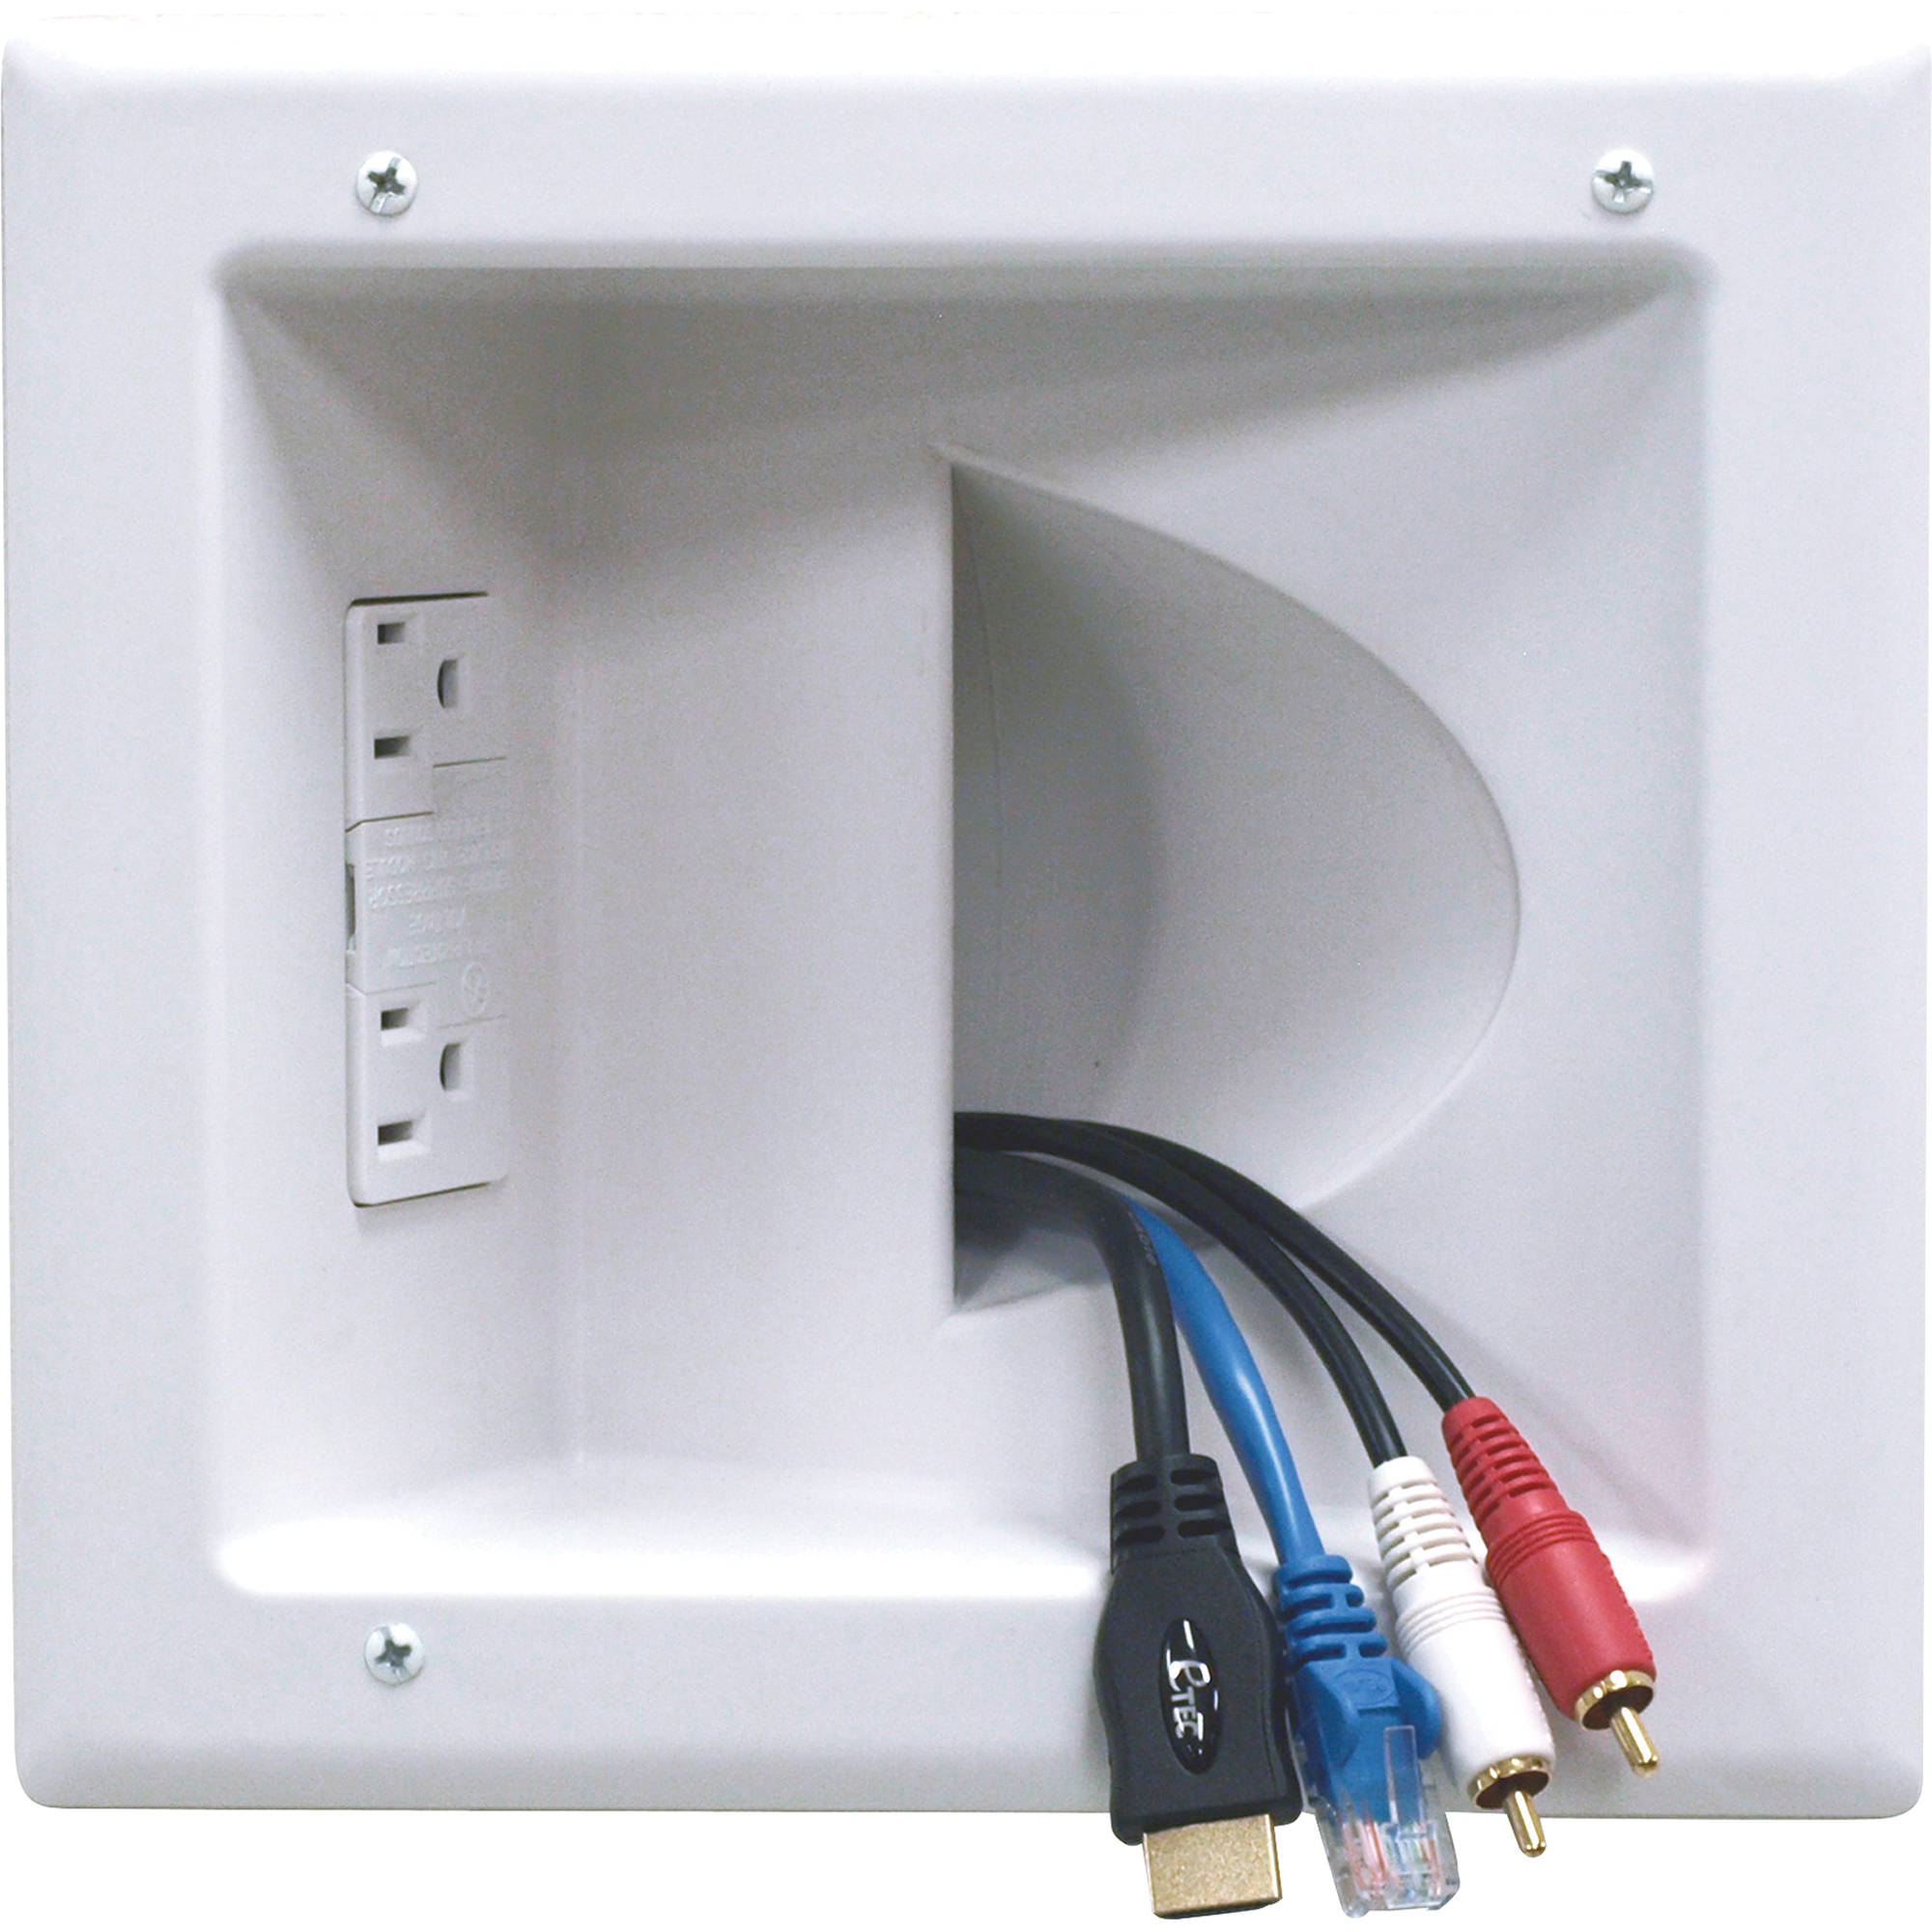 Recessed Low Voltage Wiring Enclosure Great Installation Of A House For Lighting Peerless Av Media Plate With Duplex Iba5 W Rh Bhphotovideo Com Panel